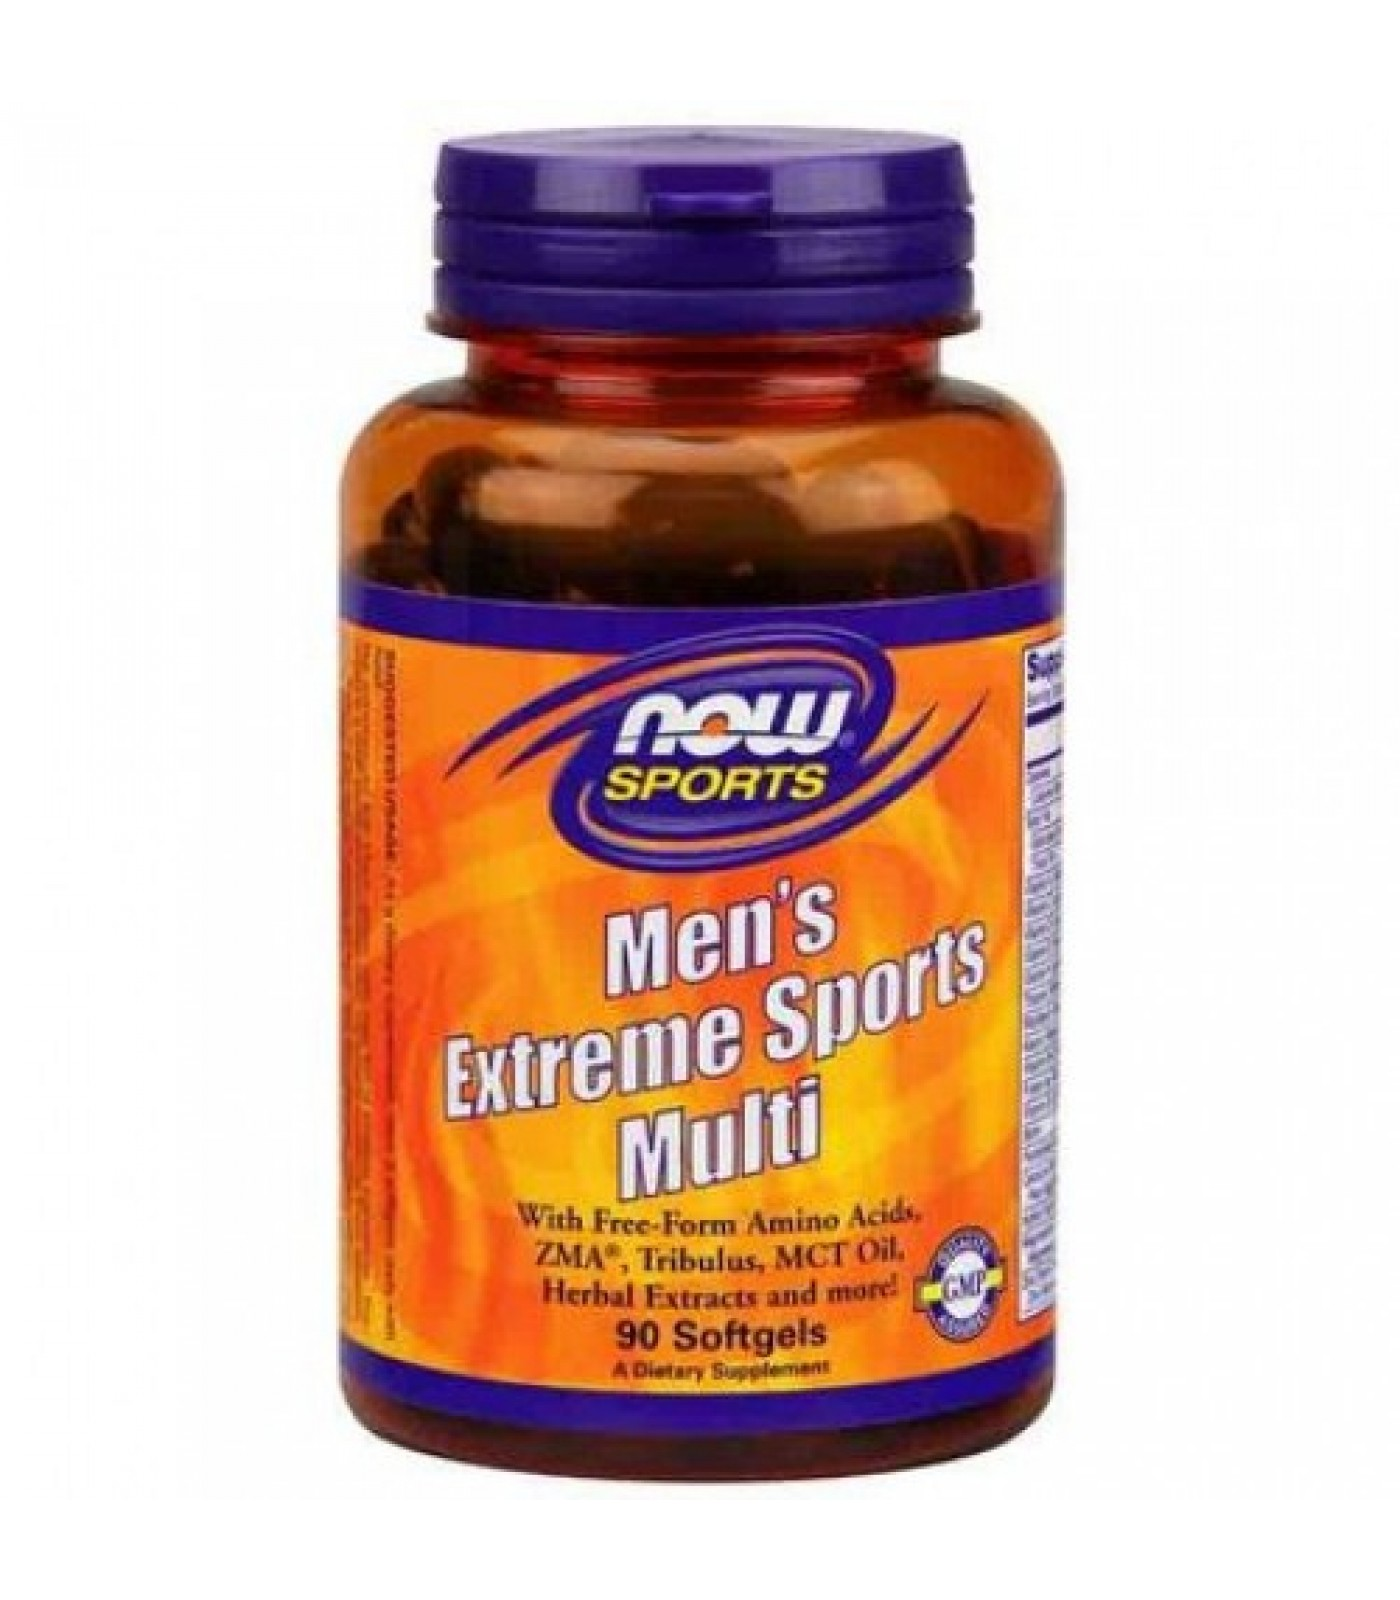 NOW - Men's Extreme Sports Multi / 90 softgels.